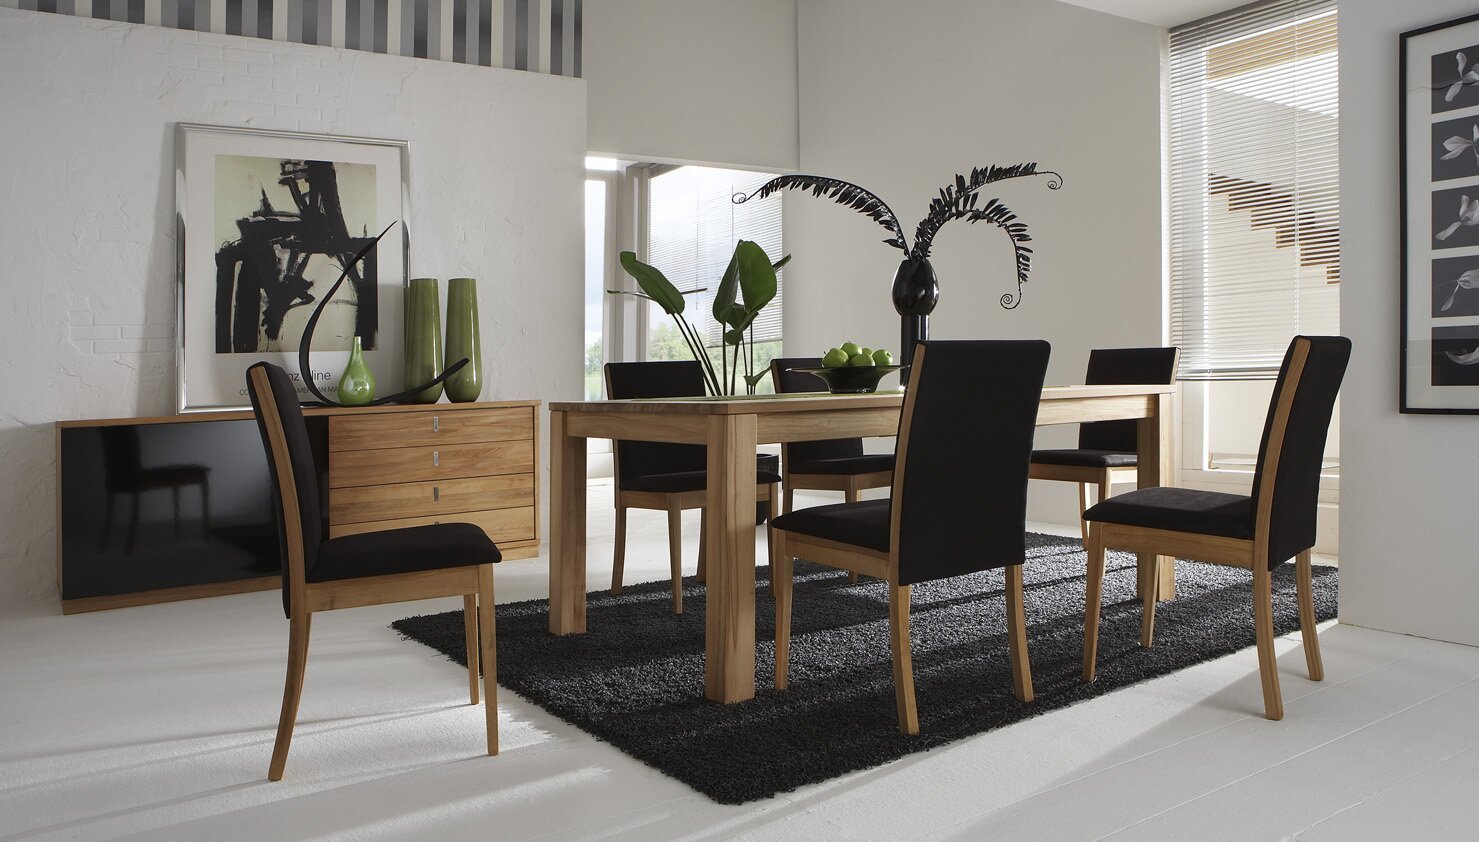 23 modern dining room examples with photos for Dining room furniture modern